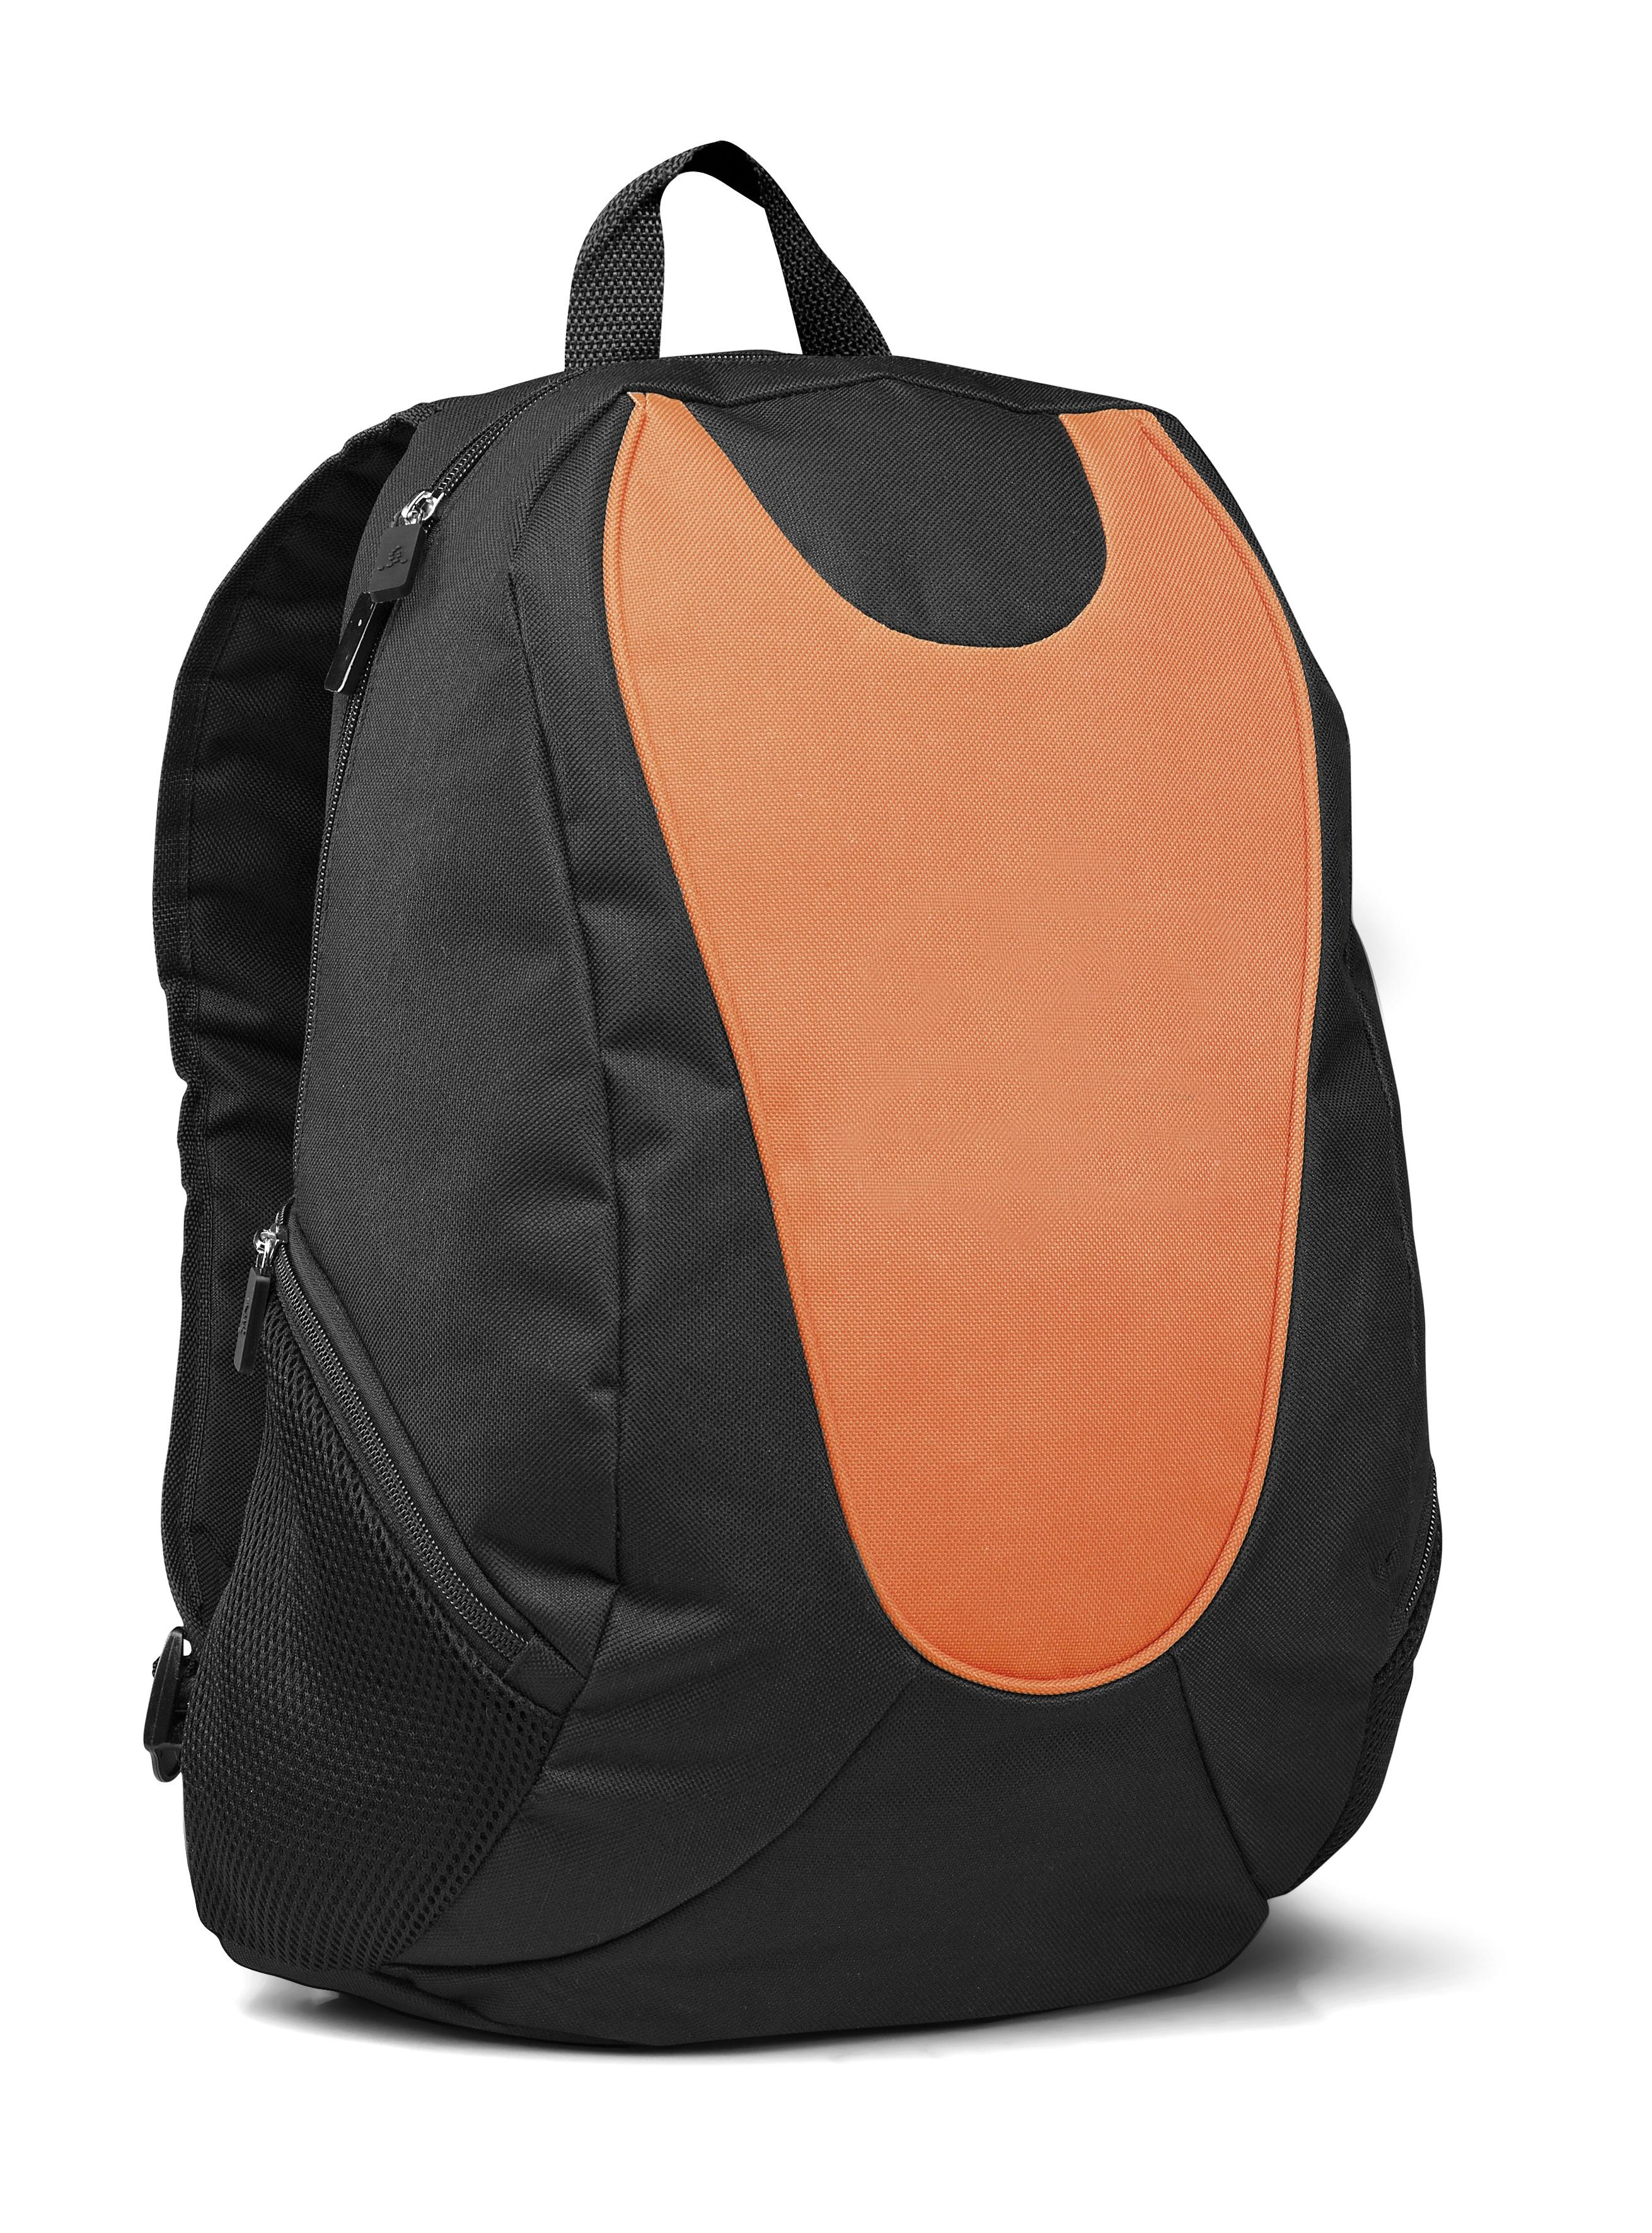 Nevada Backpack - Orange Only